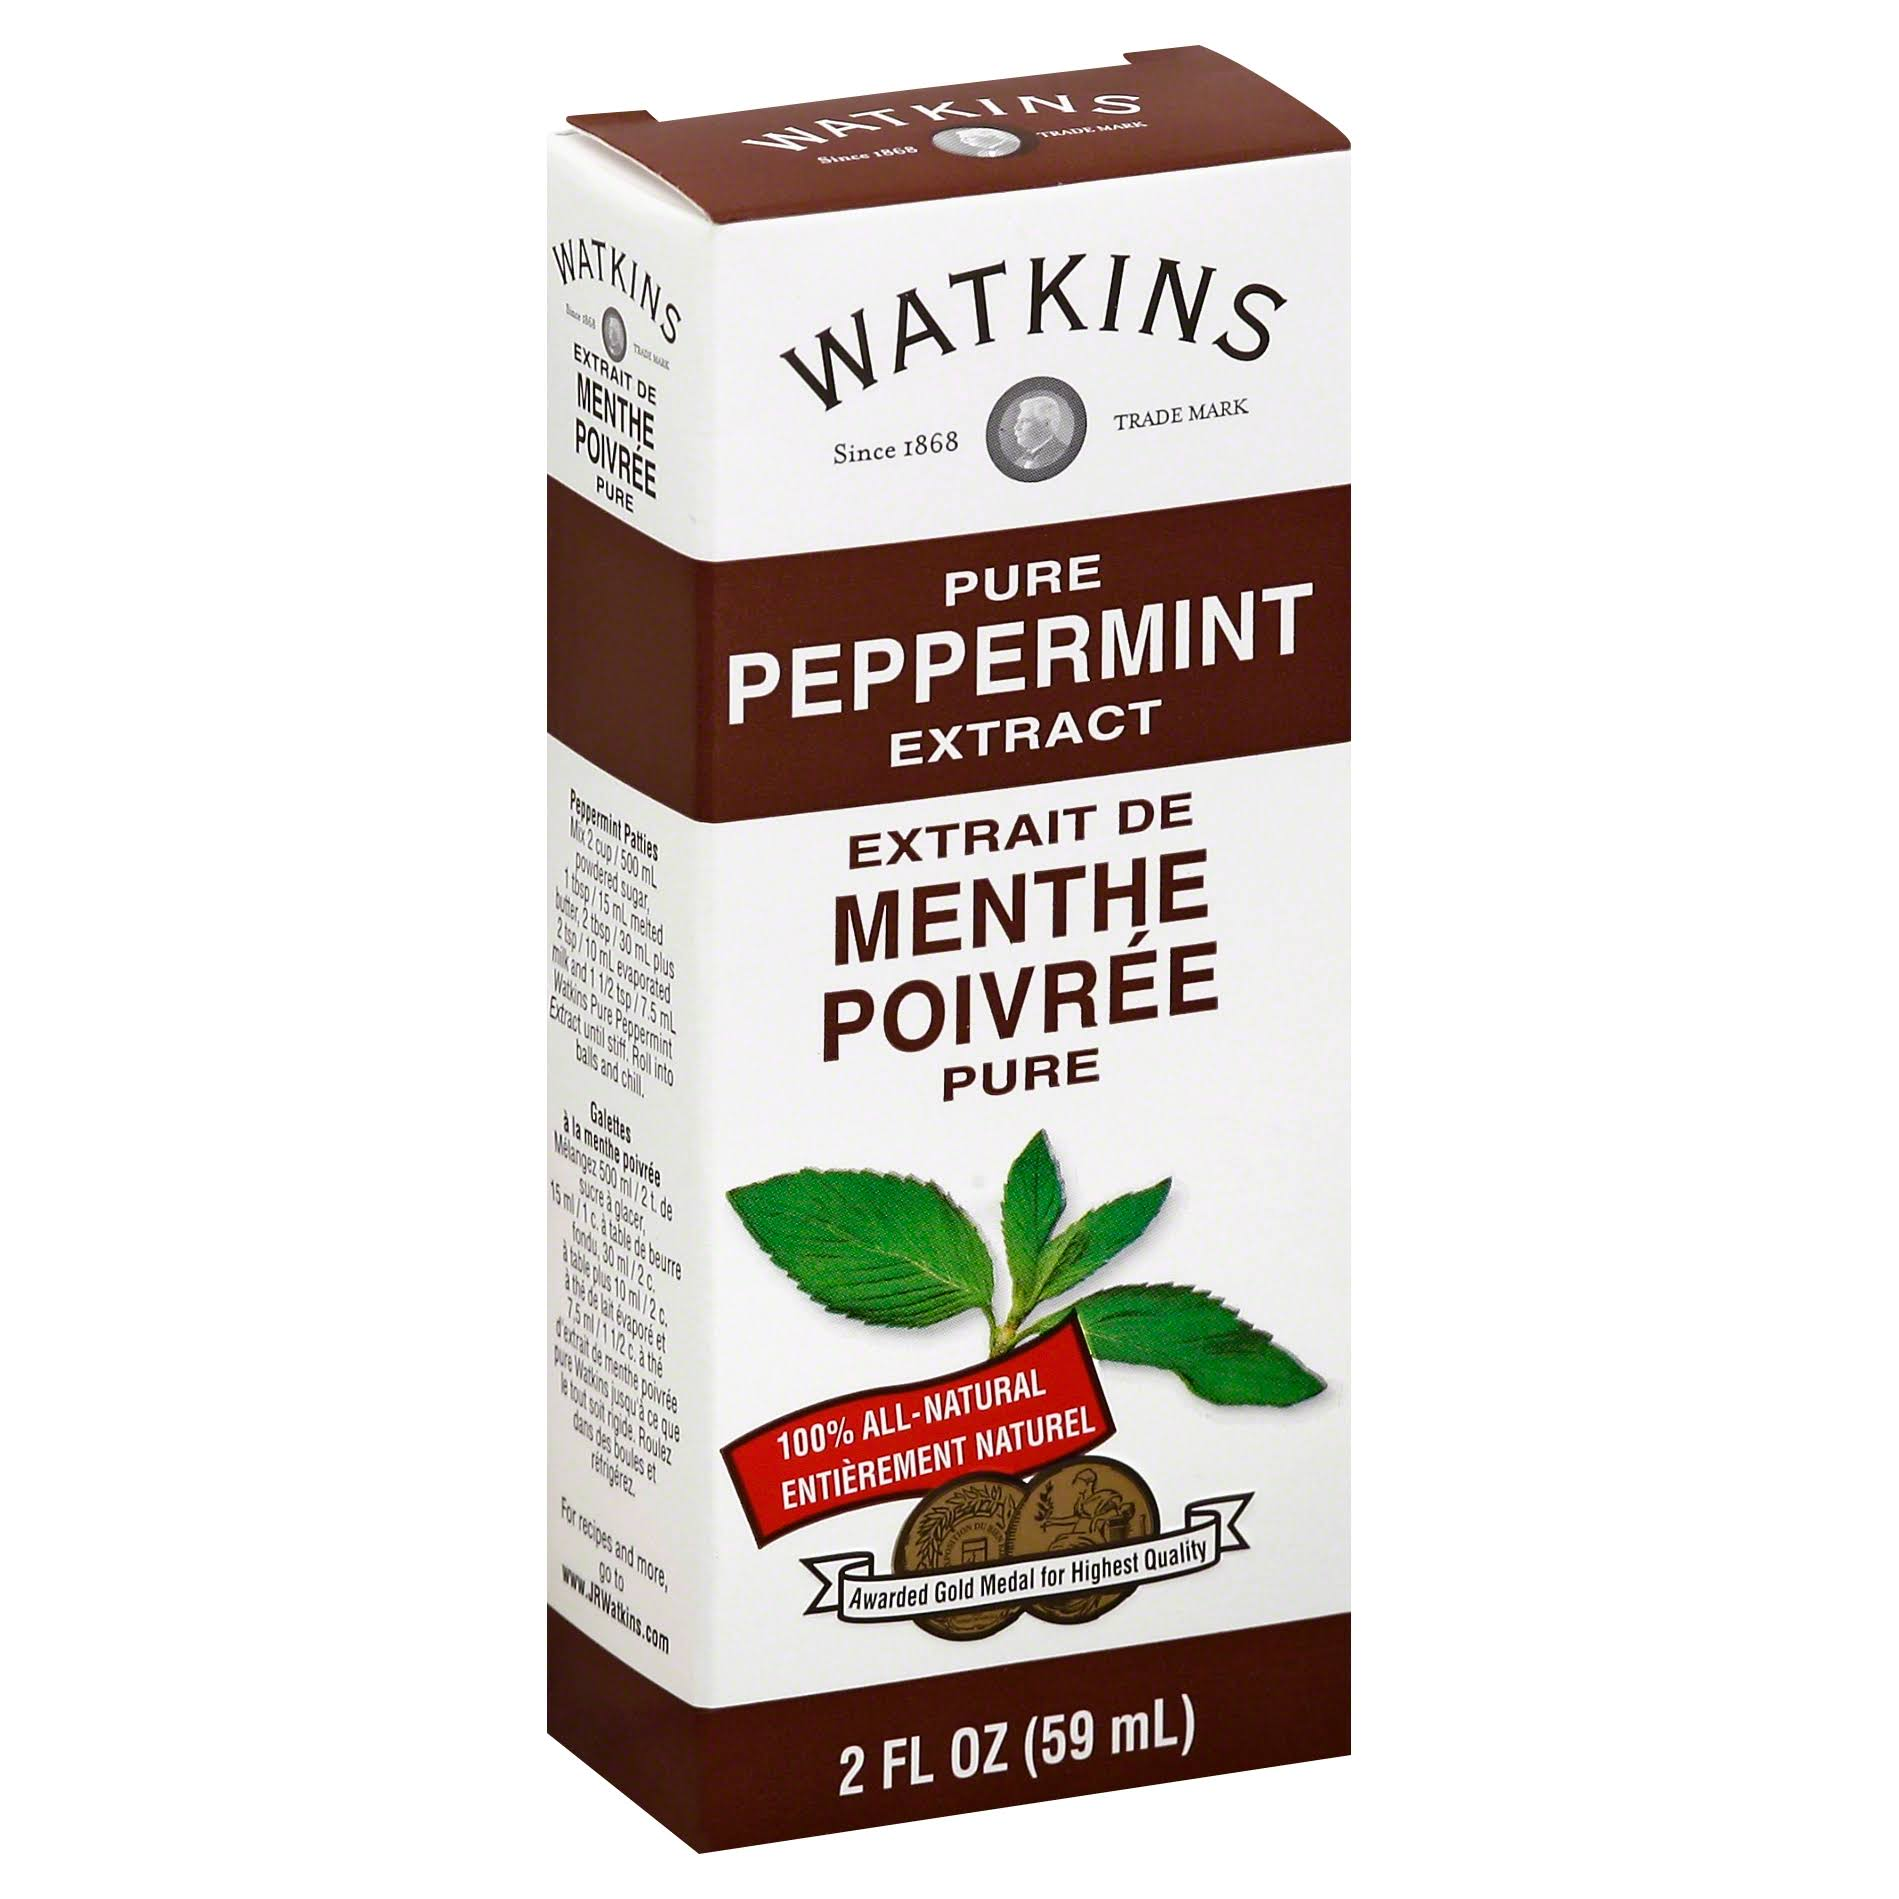 Watkins Pure Peppermint Extract - 2 fl oz